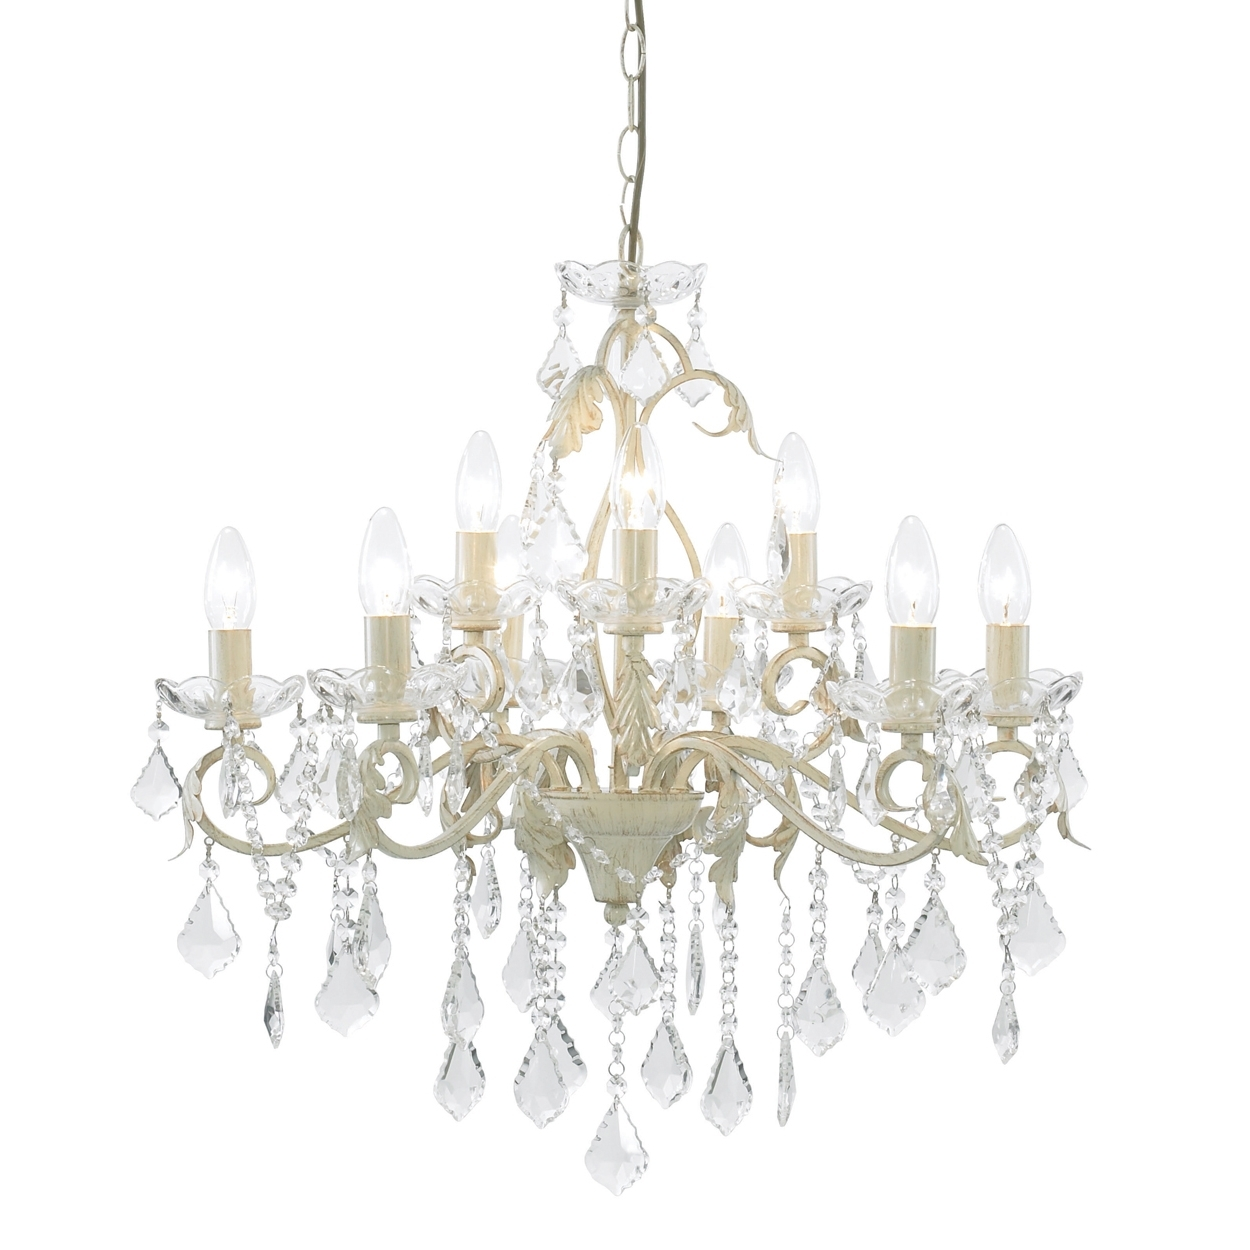 Chandeliers Design : Magnificent Cream And Gold Crystal Chandelier With Regard To Well Known Large Cream Chandelier (View 4 of 20)